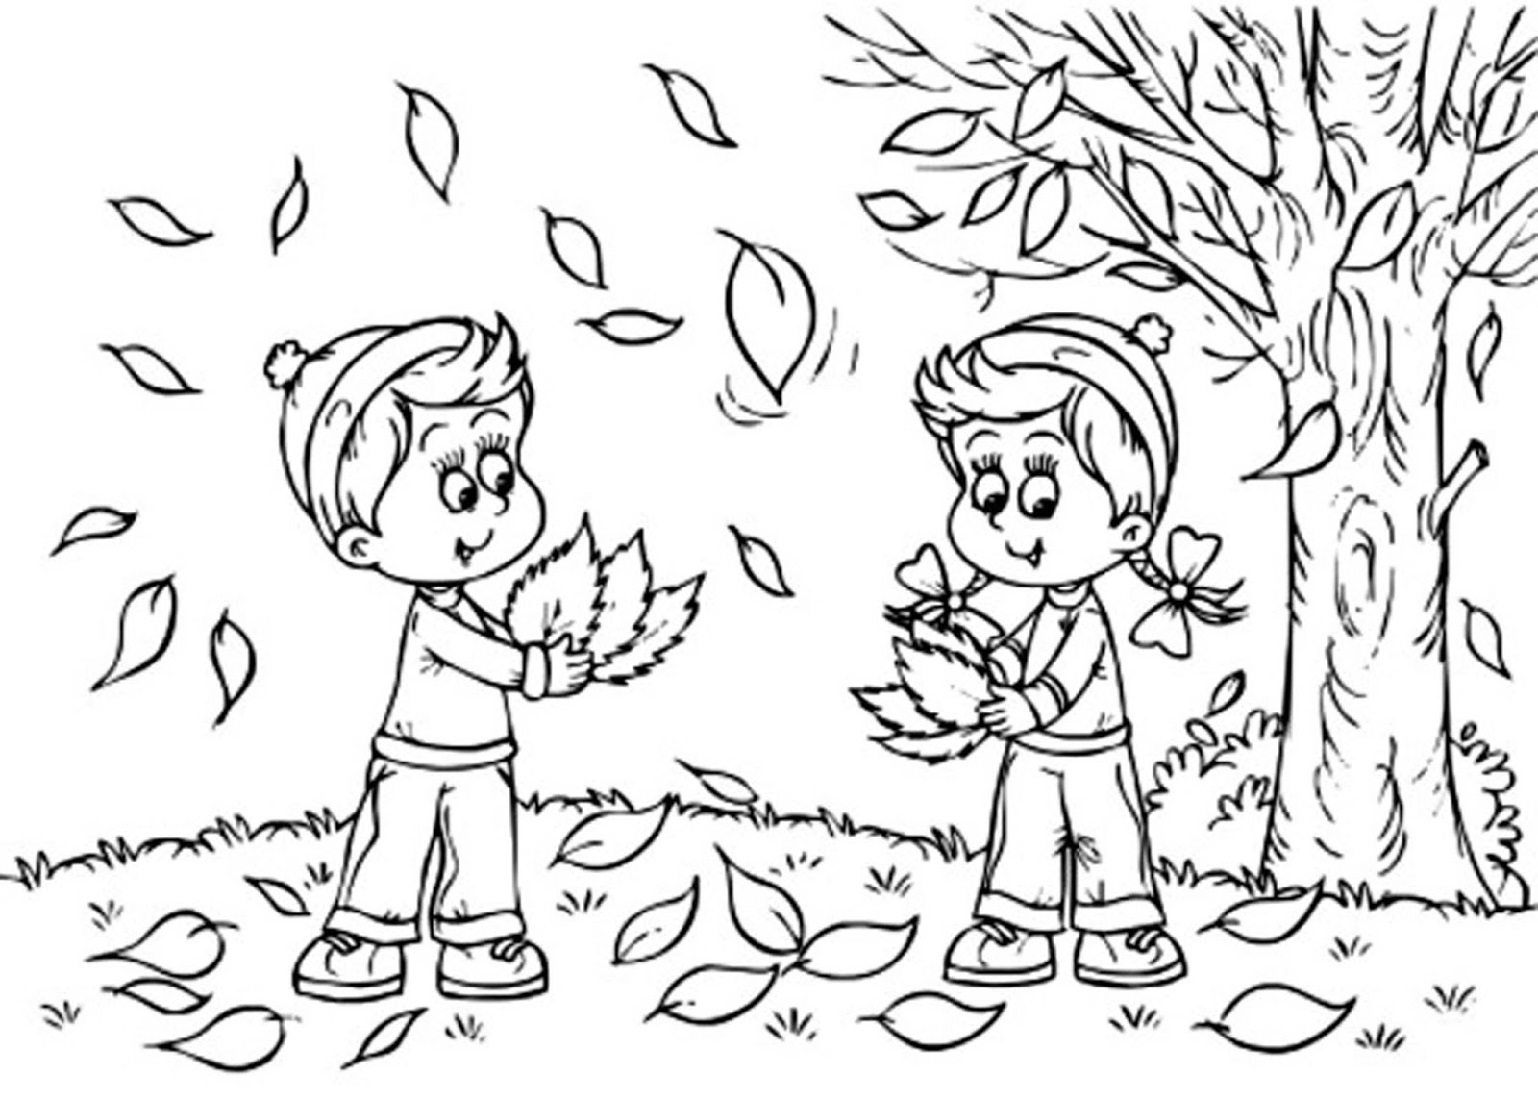 coloring fall pictures free printable fall coloring pages for kids best fall pictures coloring